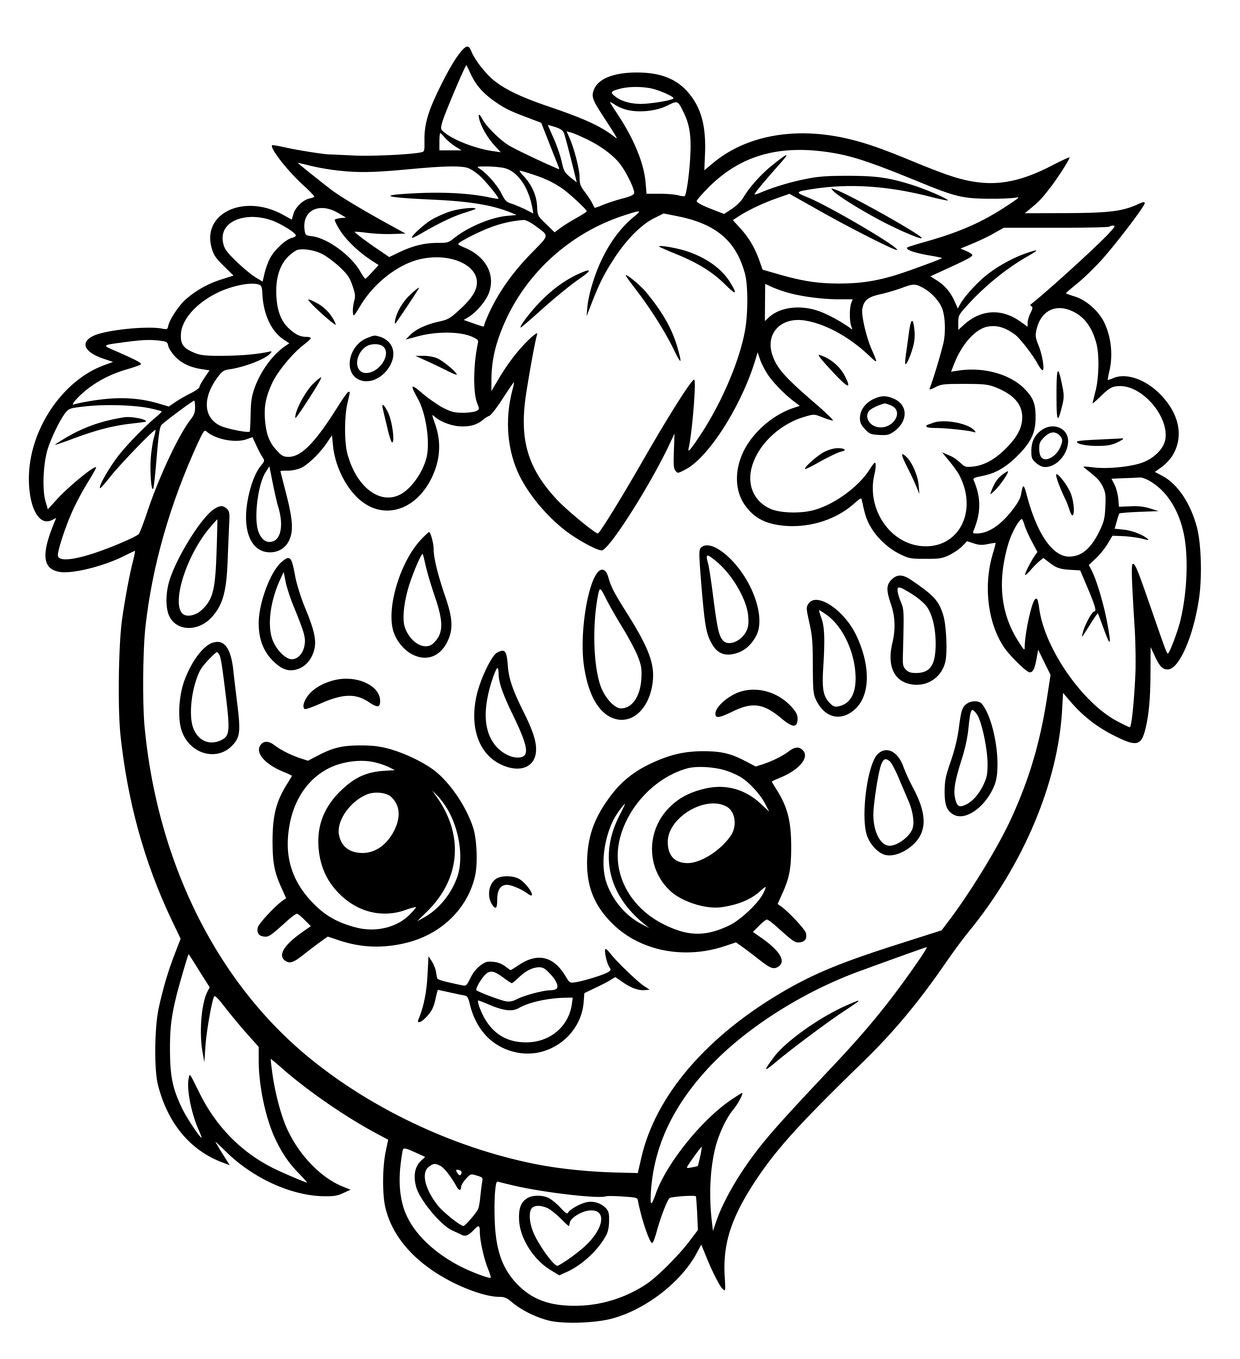 1240x1359 Shopkins Coloring Pages